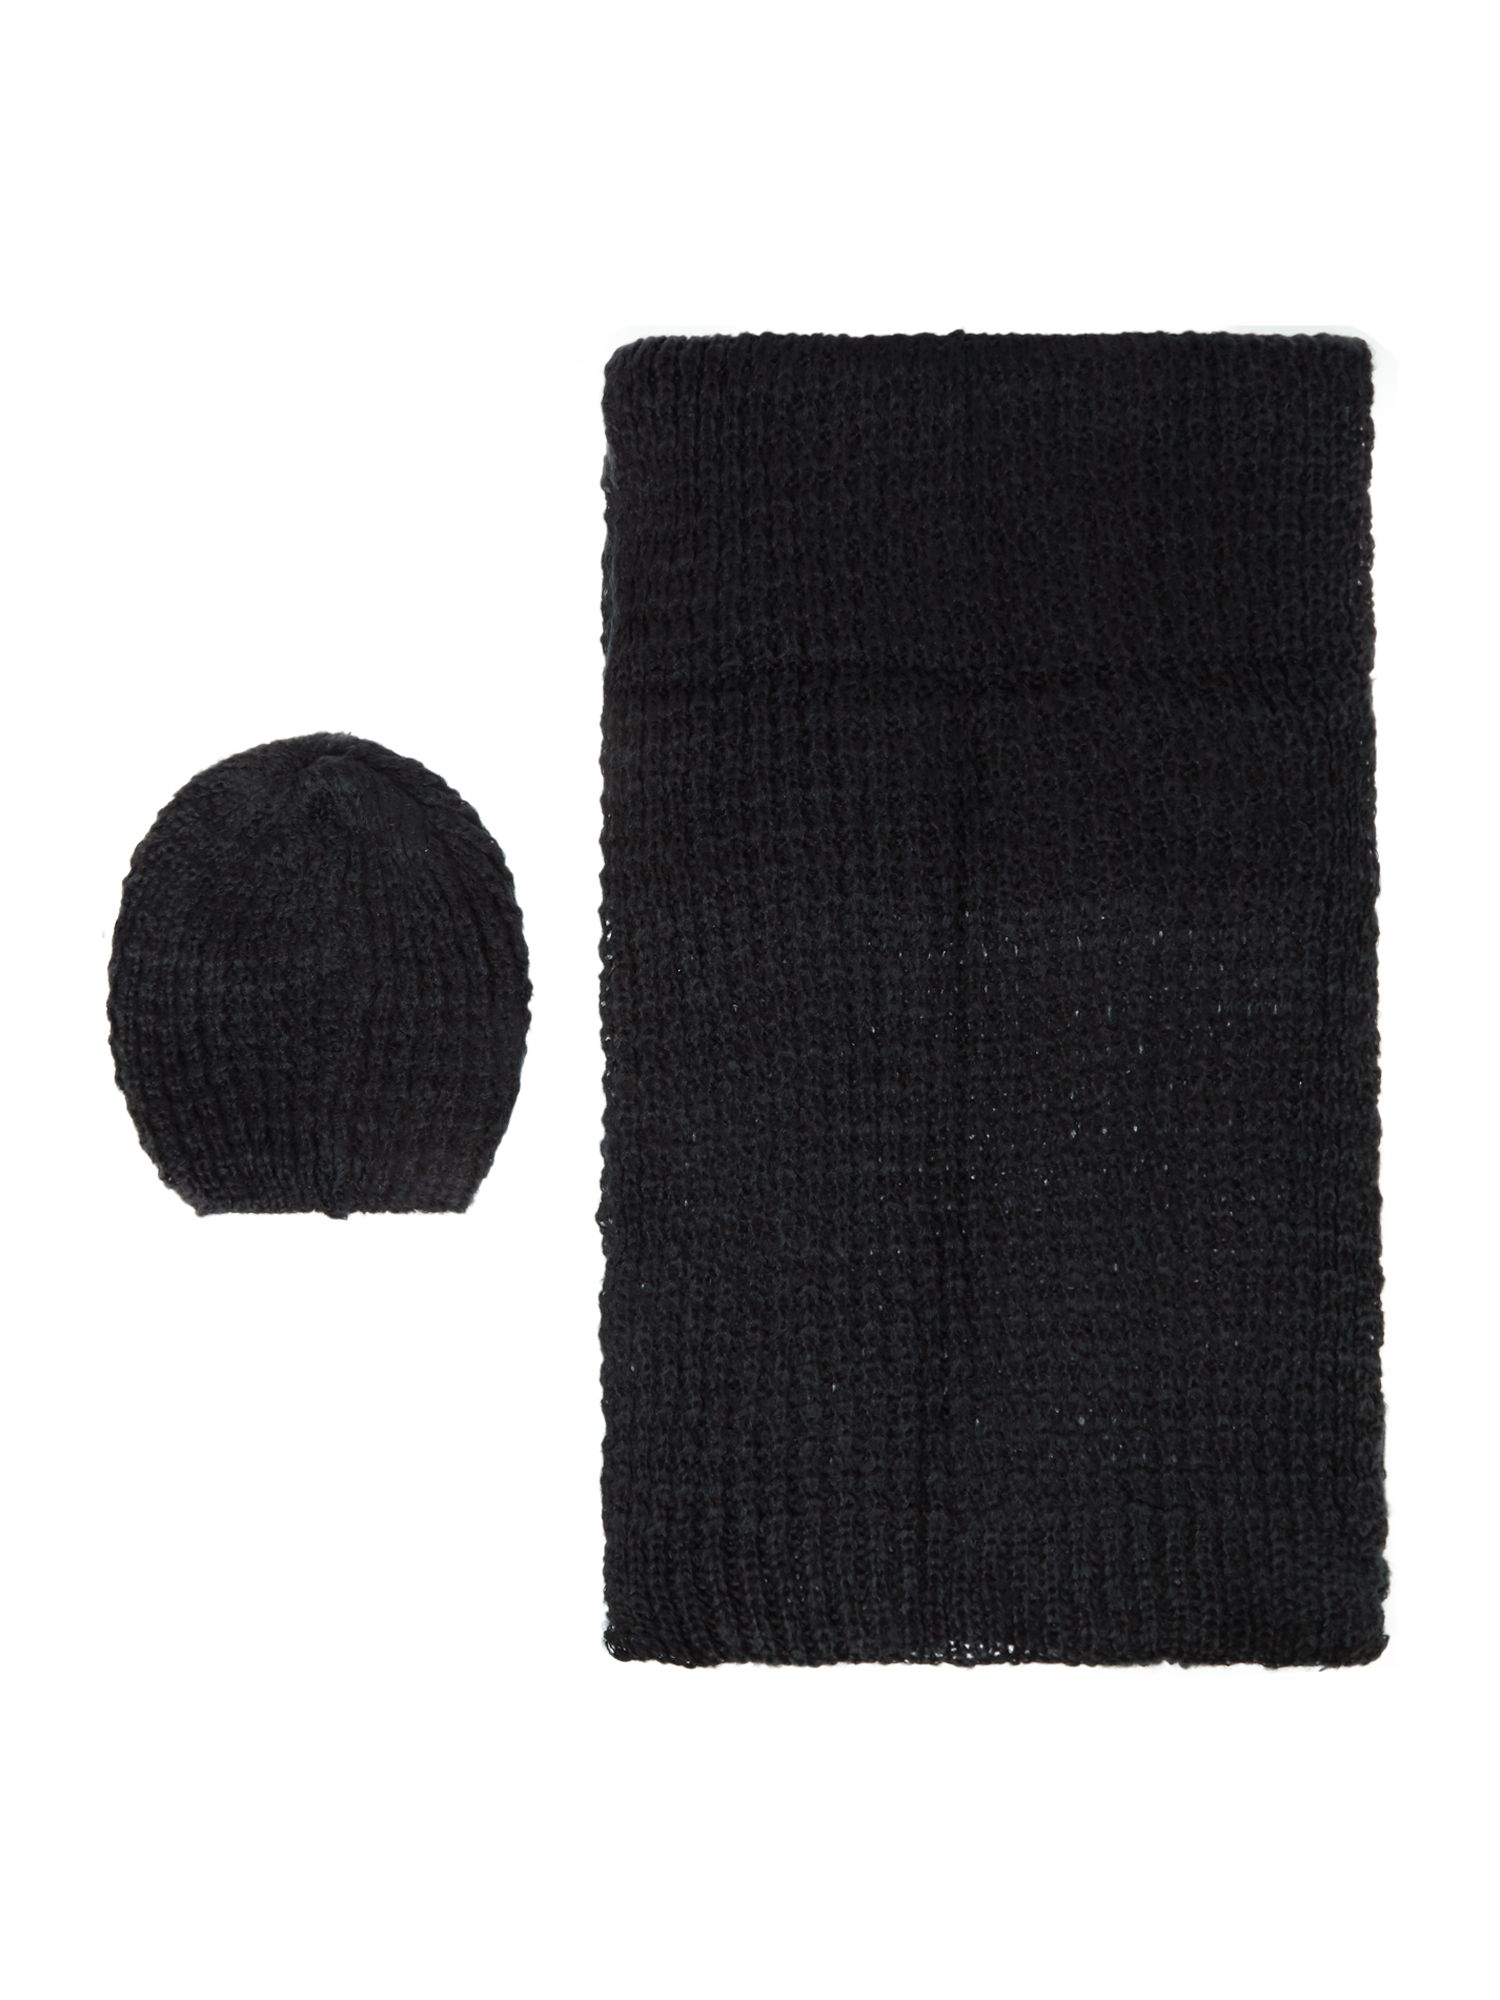 Pieces Pieces Knitted scarf and hat gift set, Black